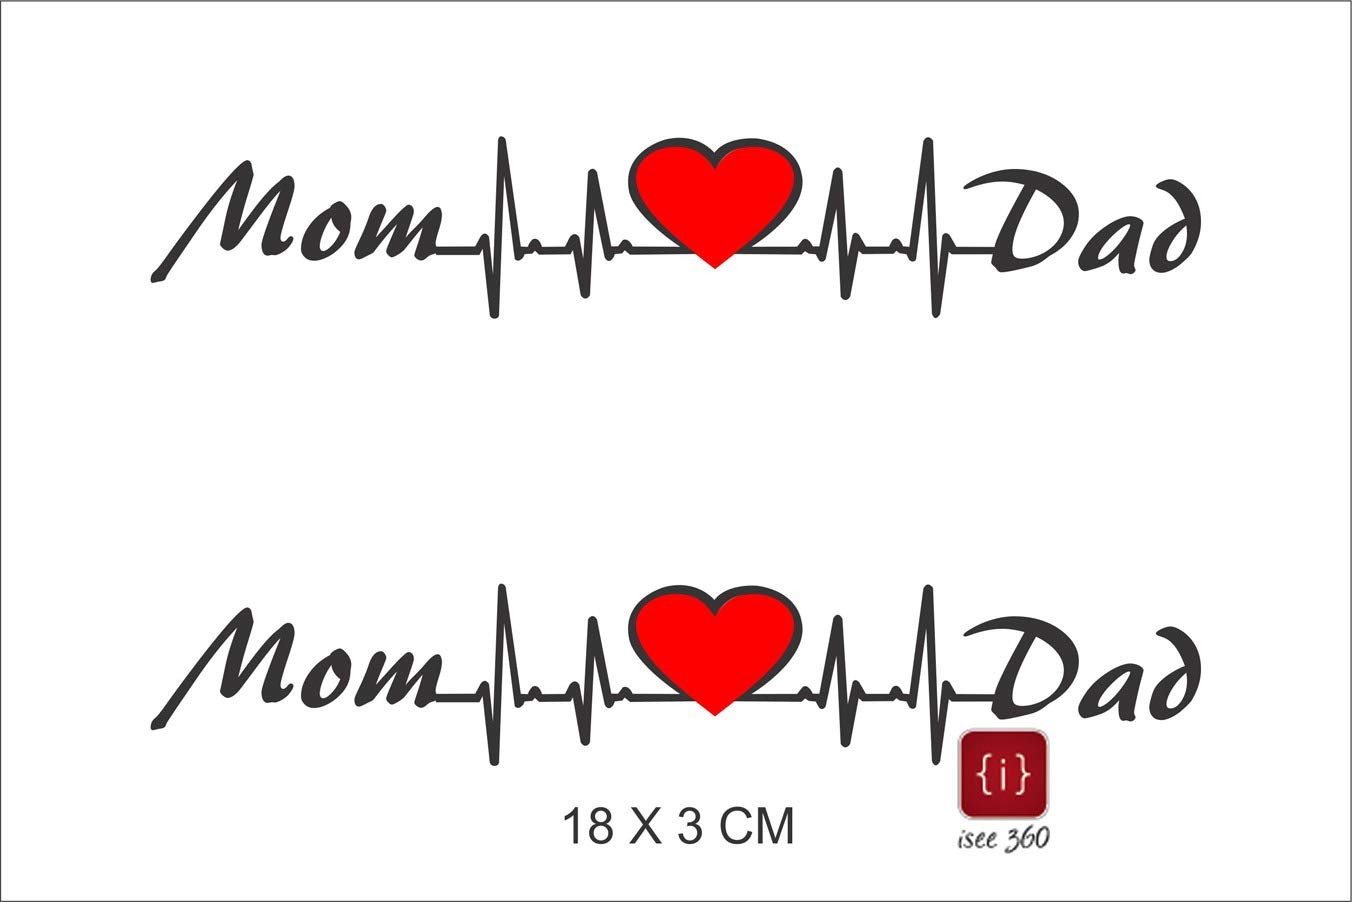 Isee 360 mom love dad sticker for bike pulser 200ns dio